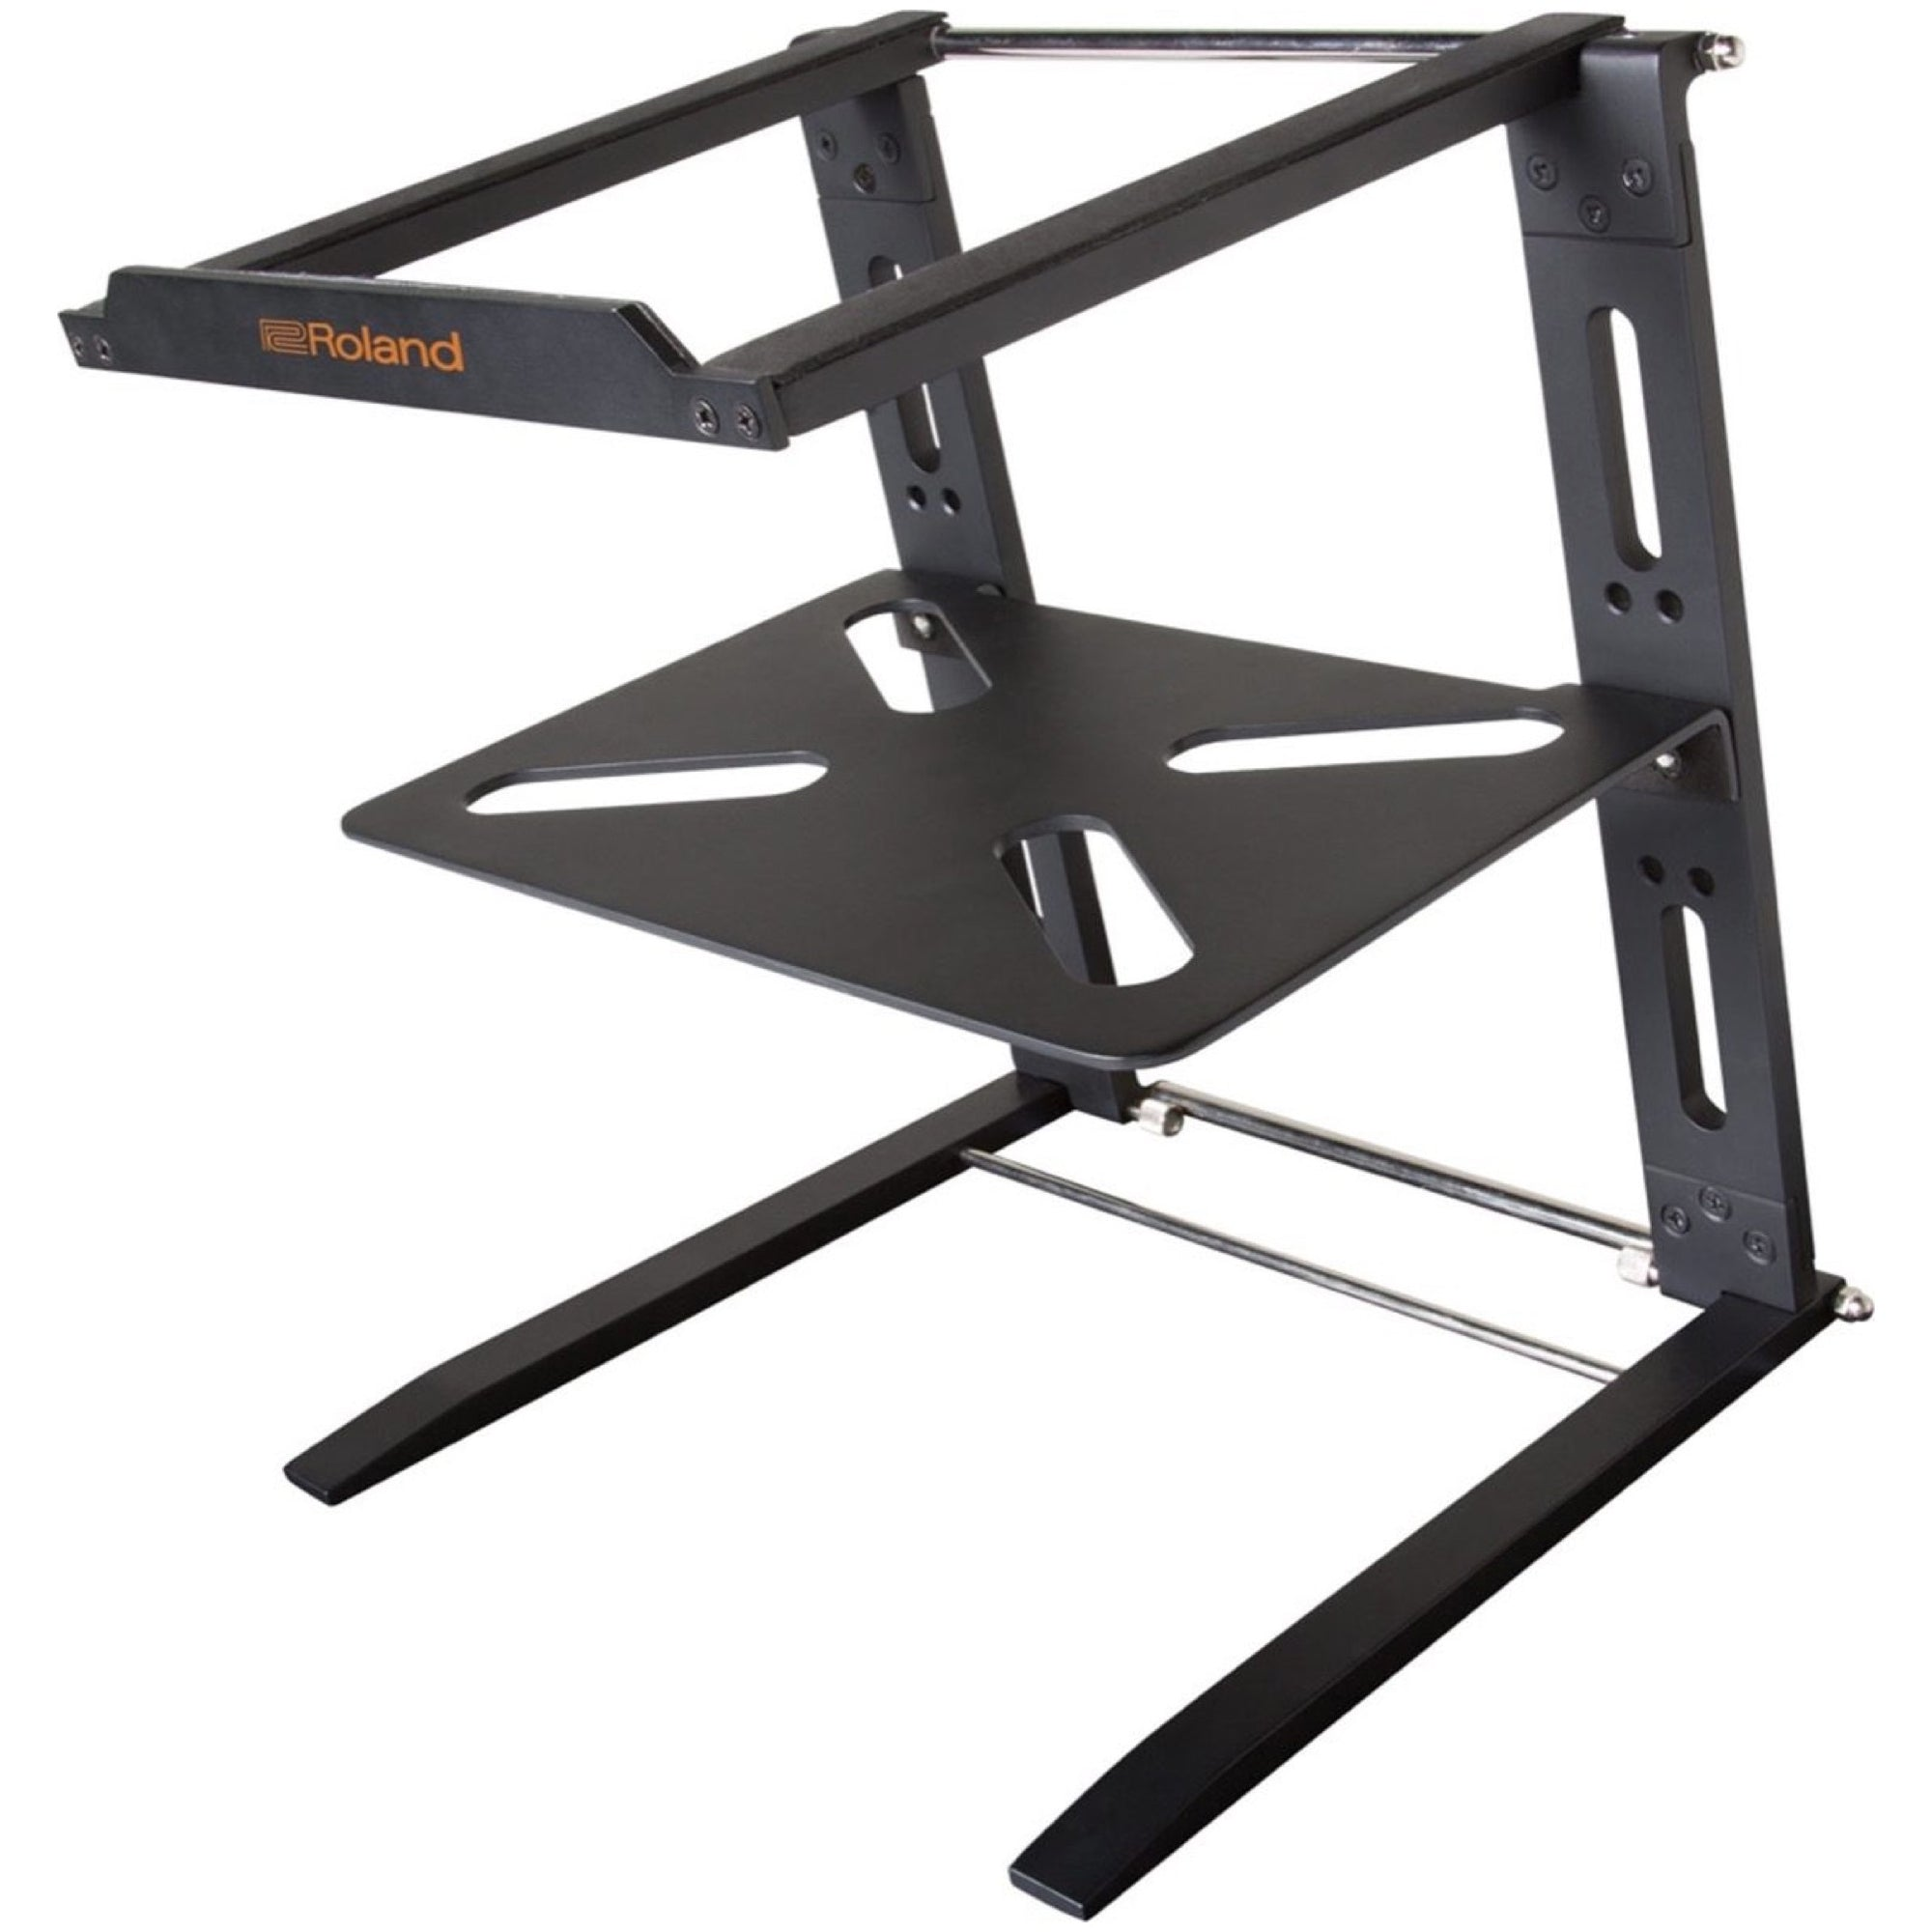 Roland LP-1T Folding Laptop Stand with Tray